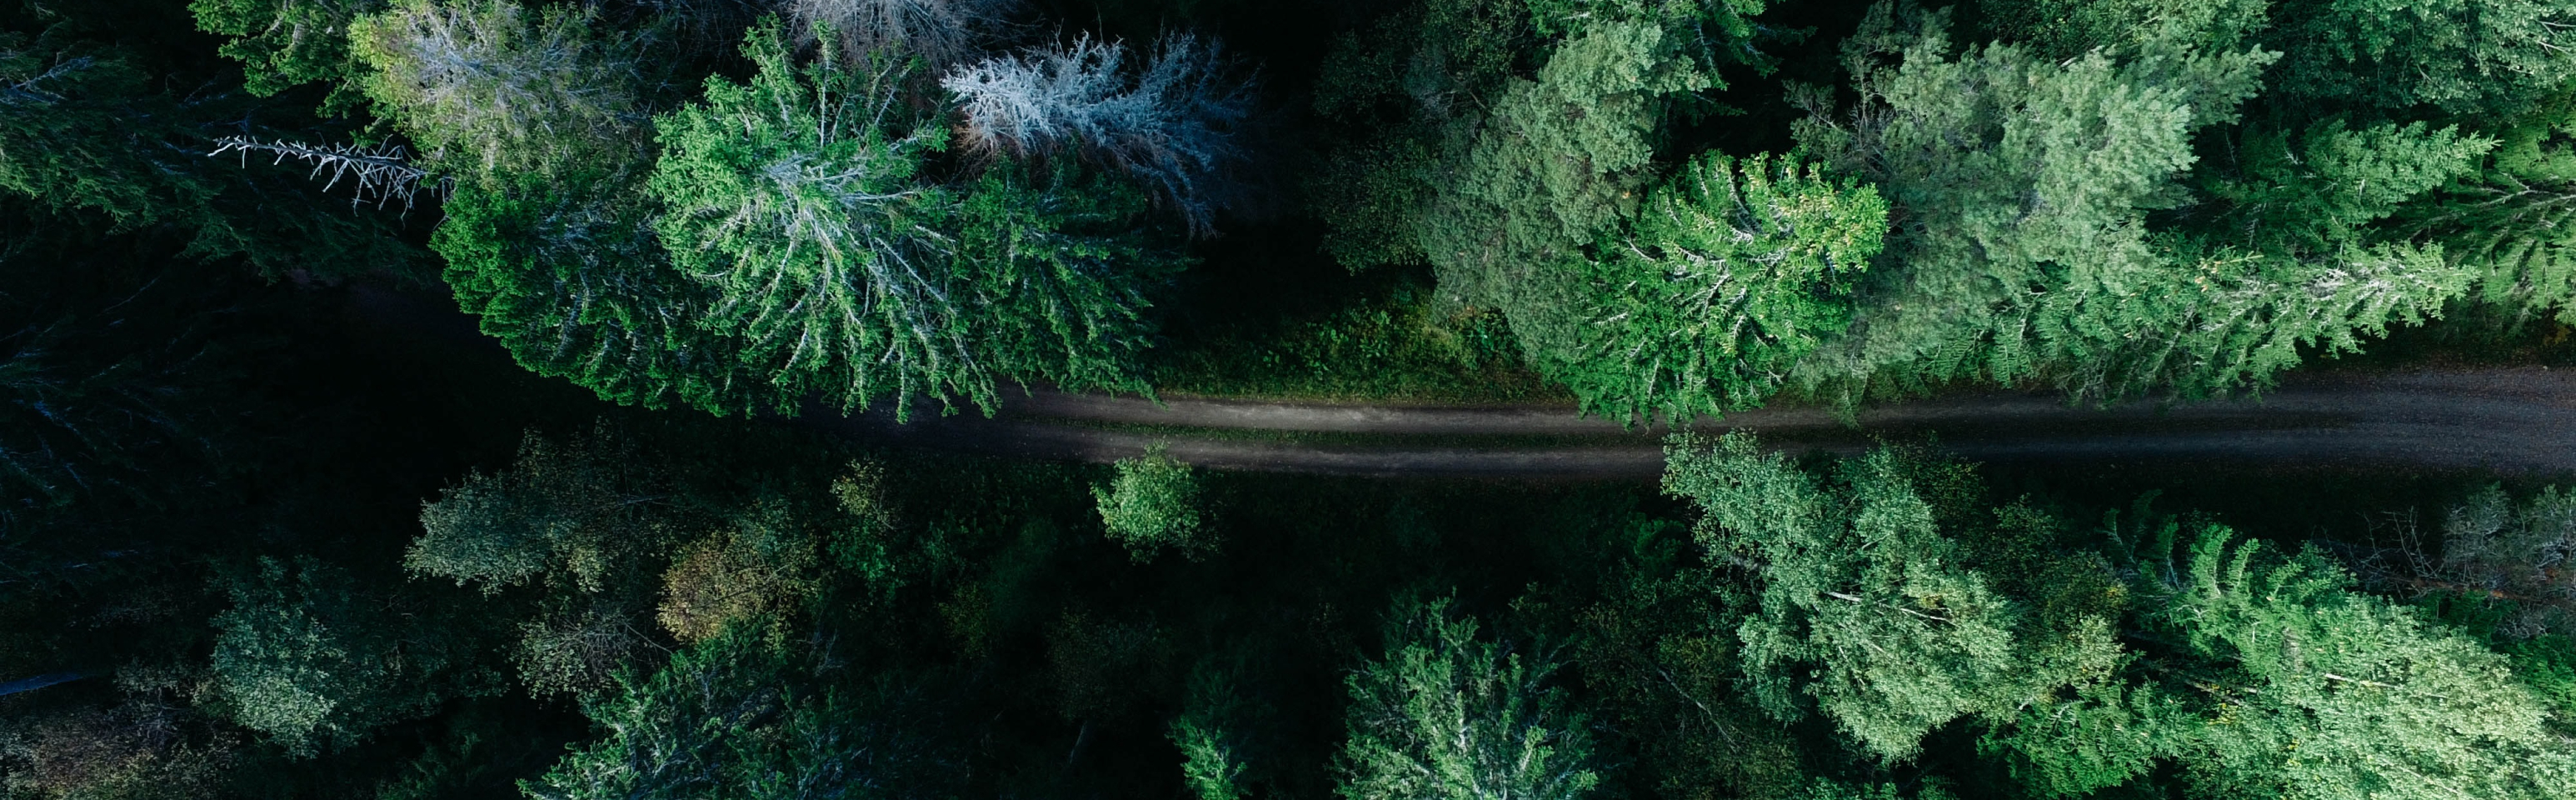 Arial view of a road with trees on either side